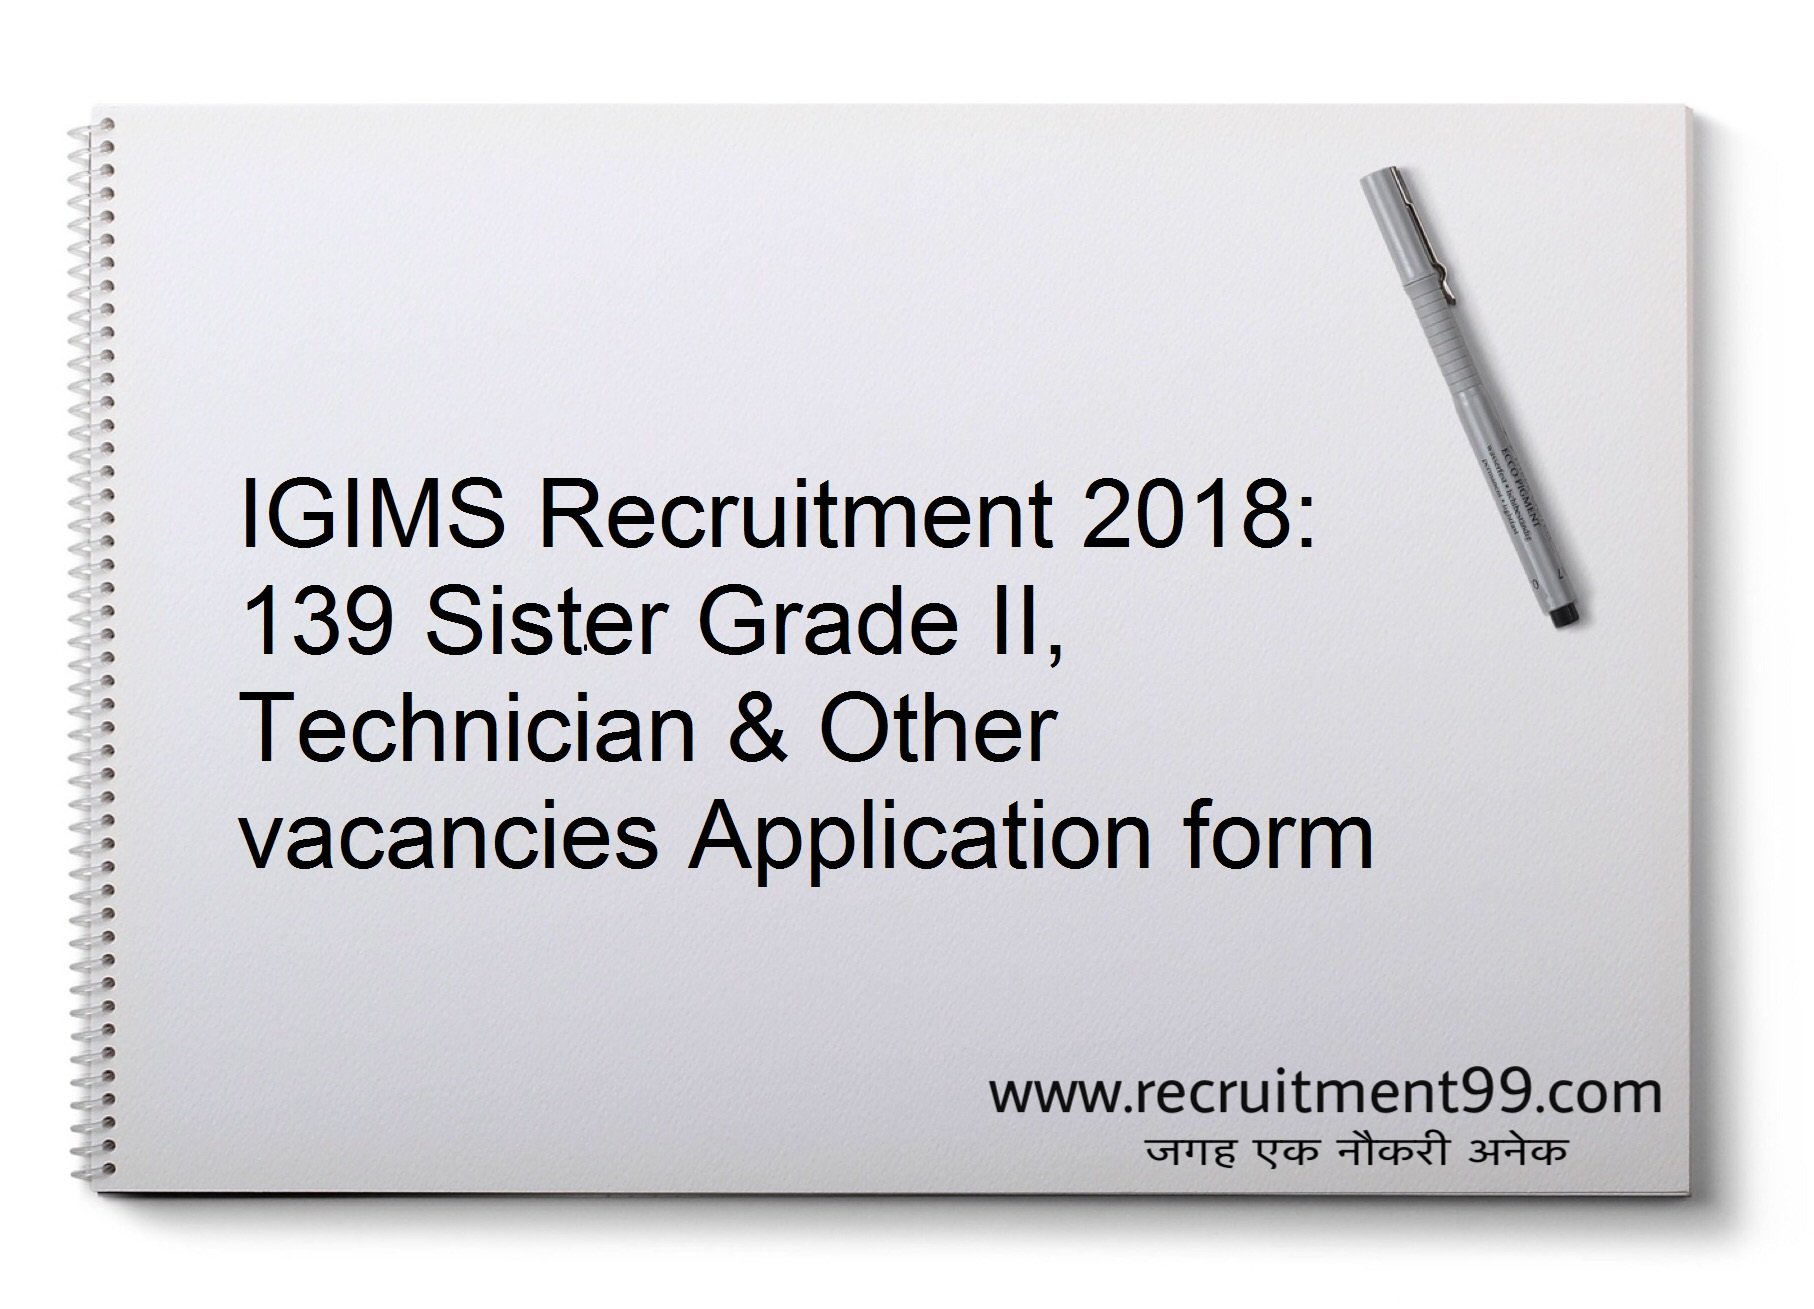 IGIMS Sister Grade II Technician & Other Recruitment Application form Admit Card Results 2018